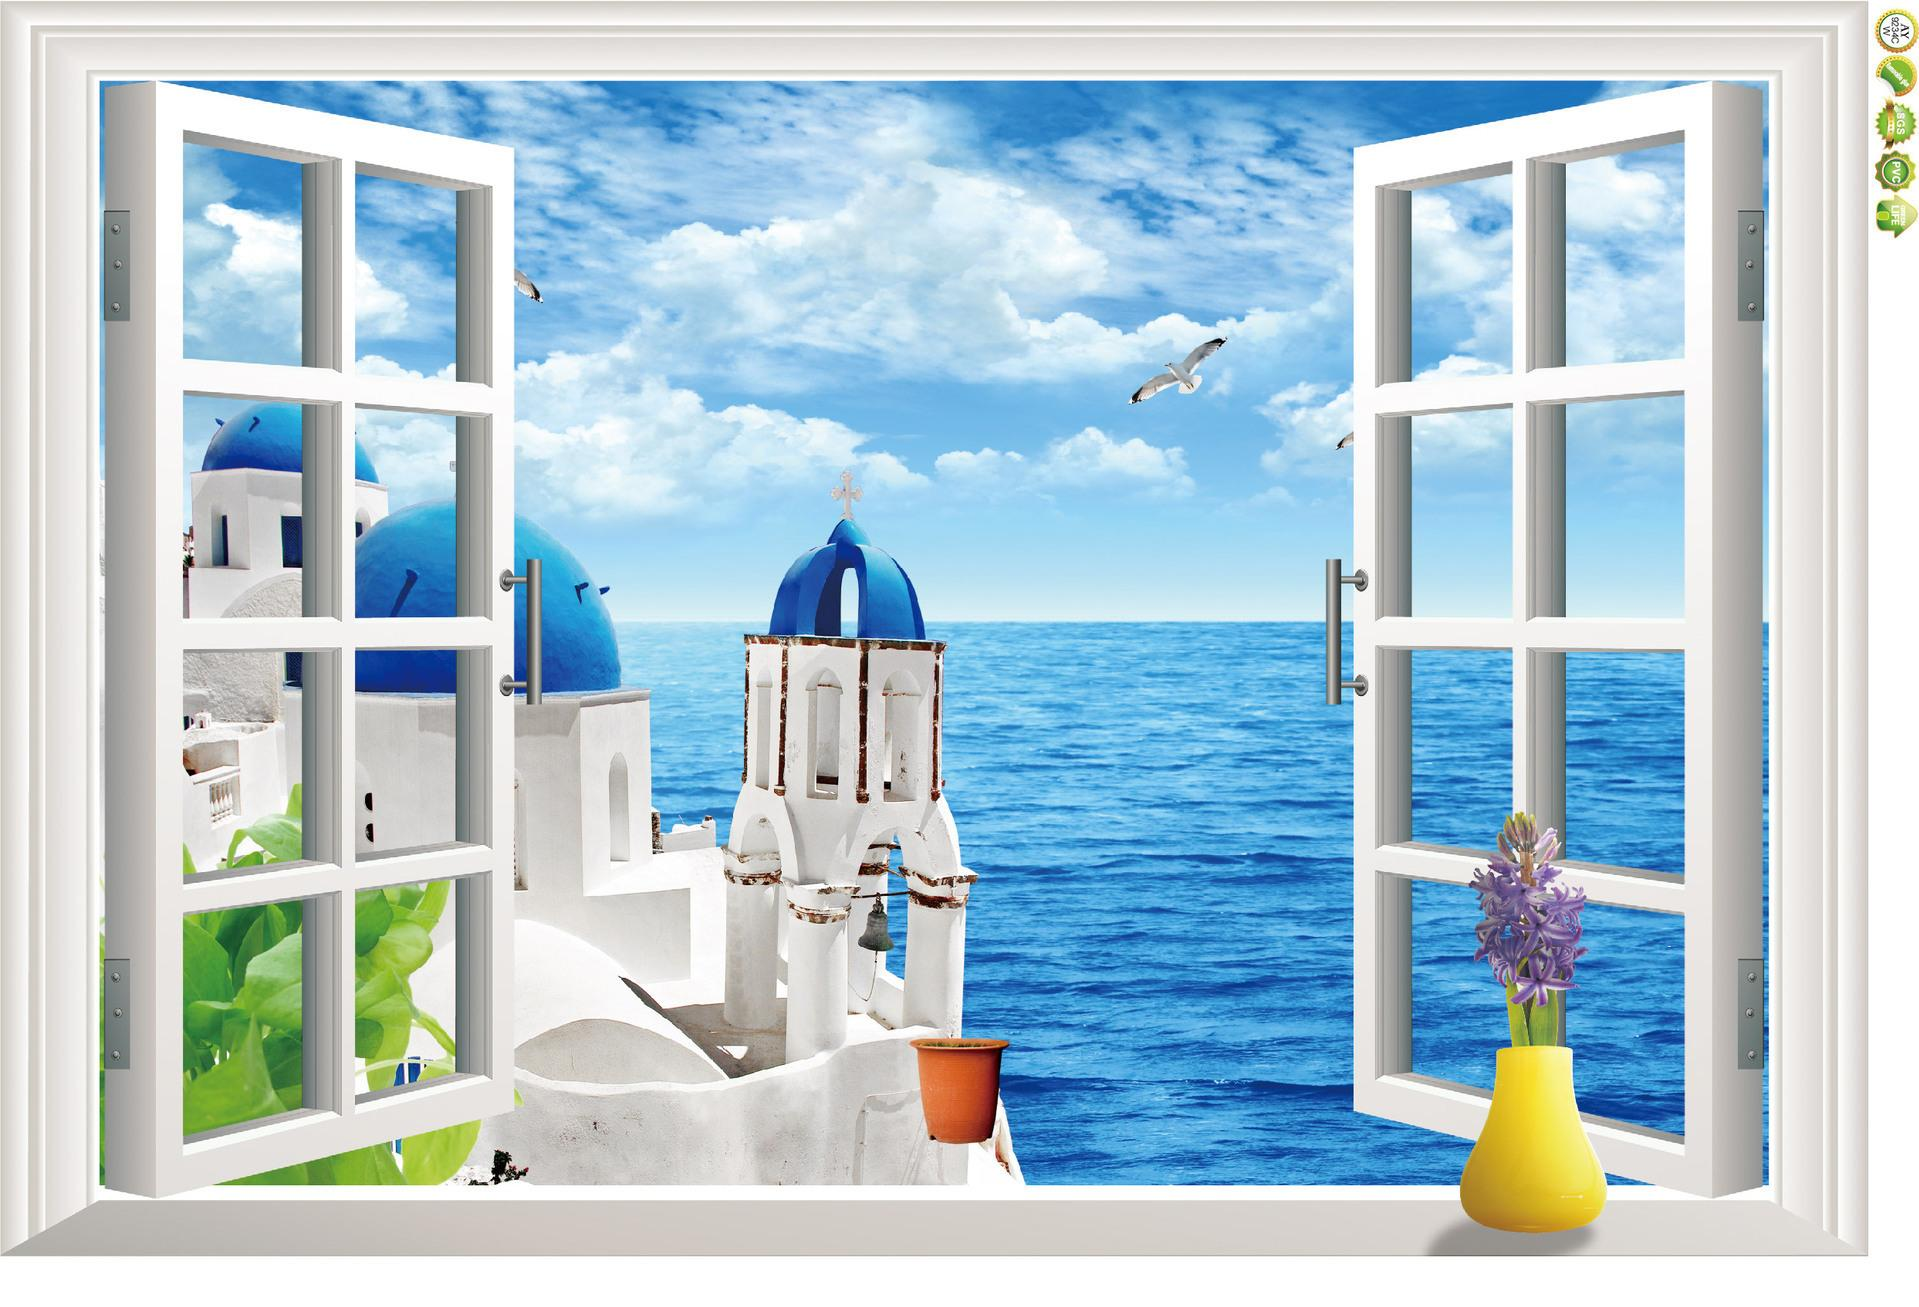 Removable Christmas Wall Stickers 3d Pvc Window Adornment Aegean Sea Landscape Children Home